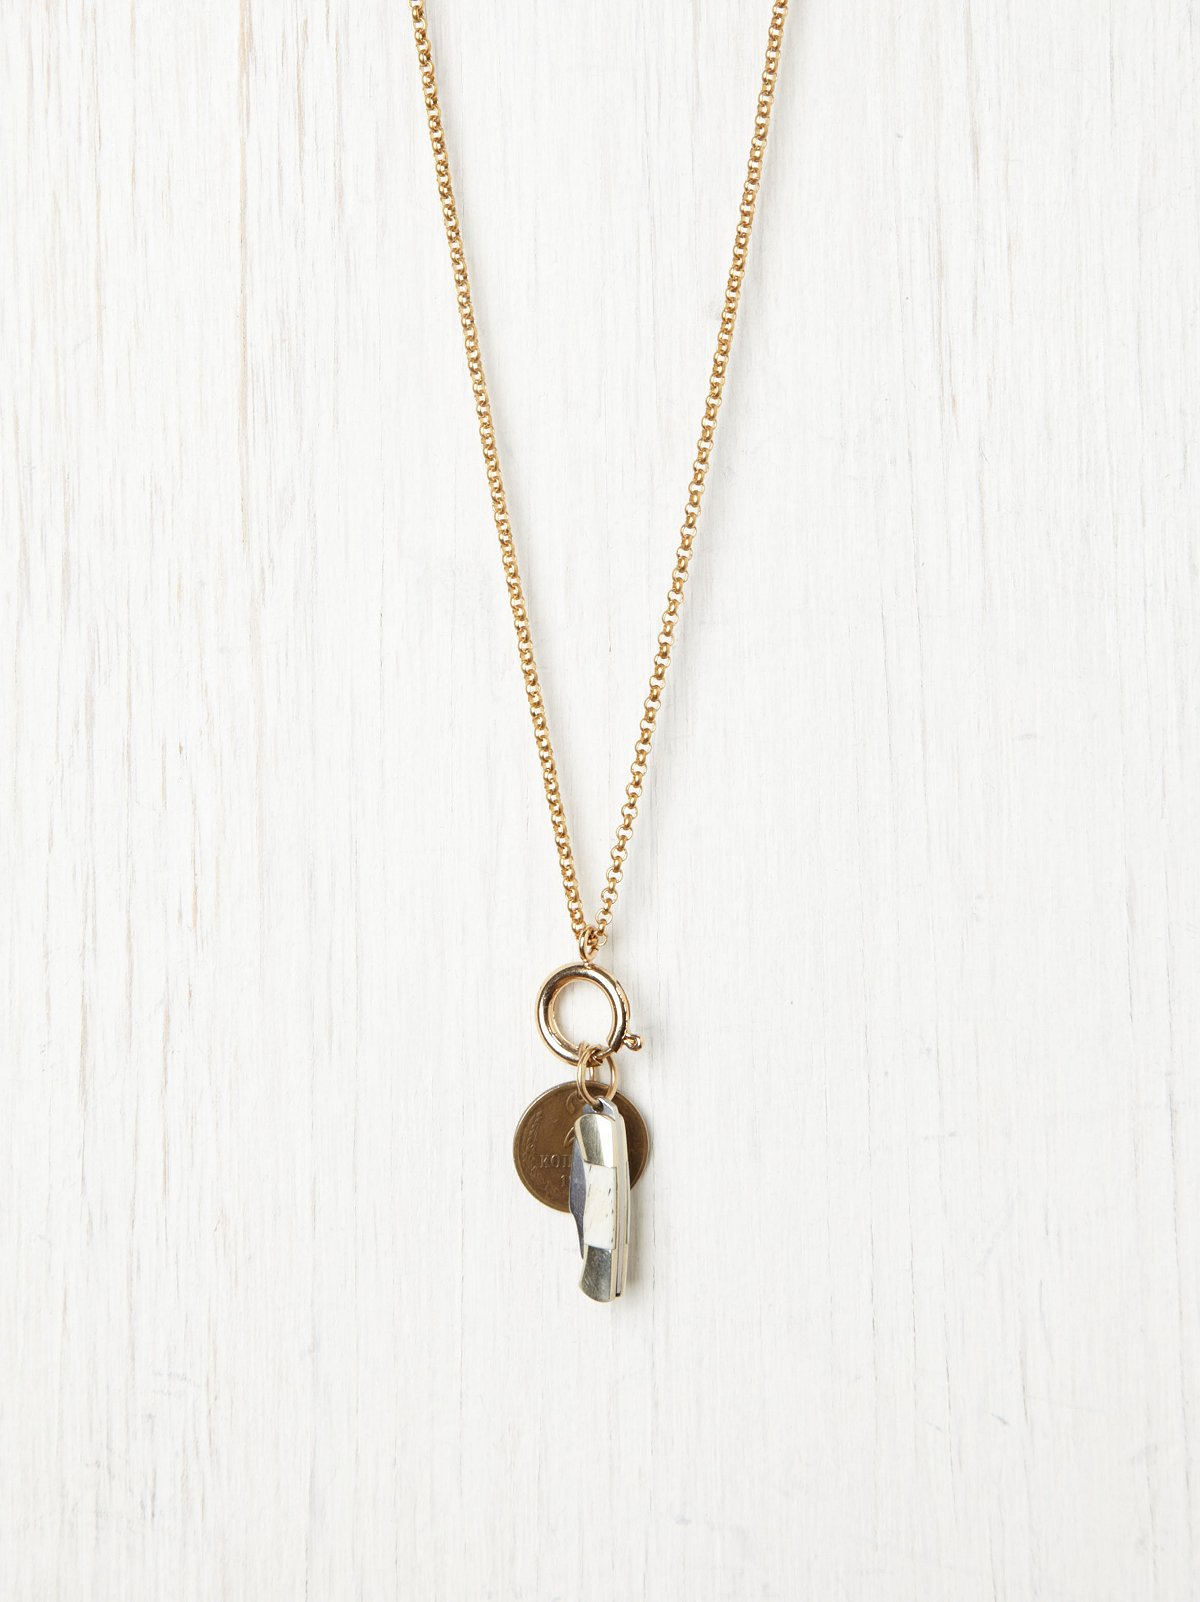 Coin & Pocket Knife Pendant